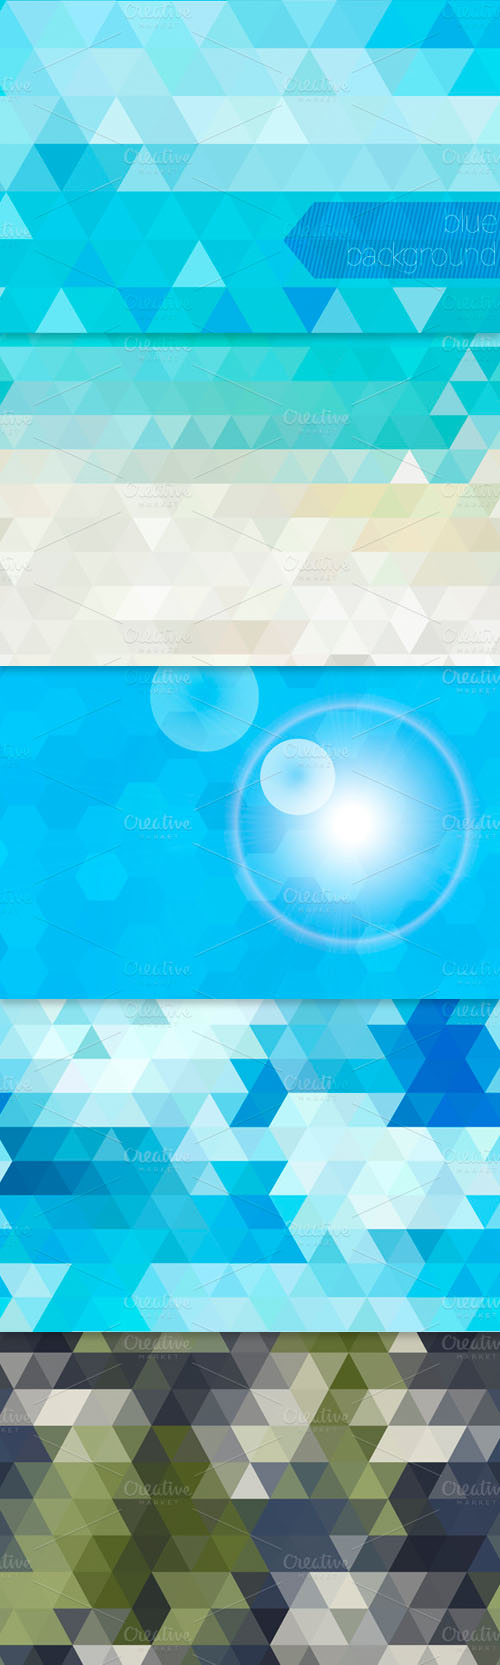 Geometric Abstract Vector Backgrounds